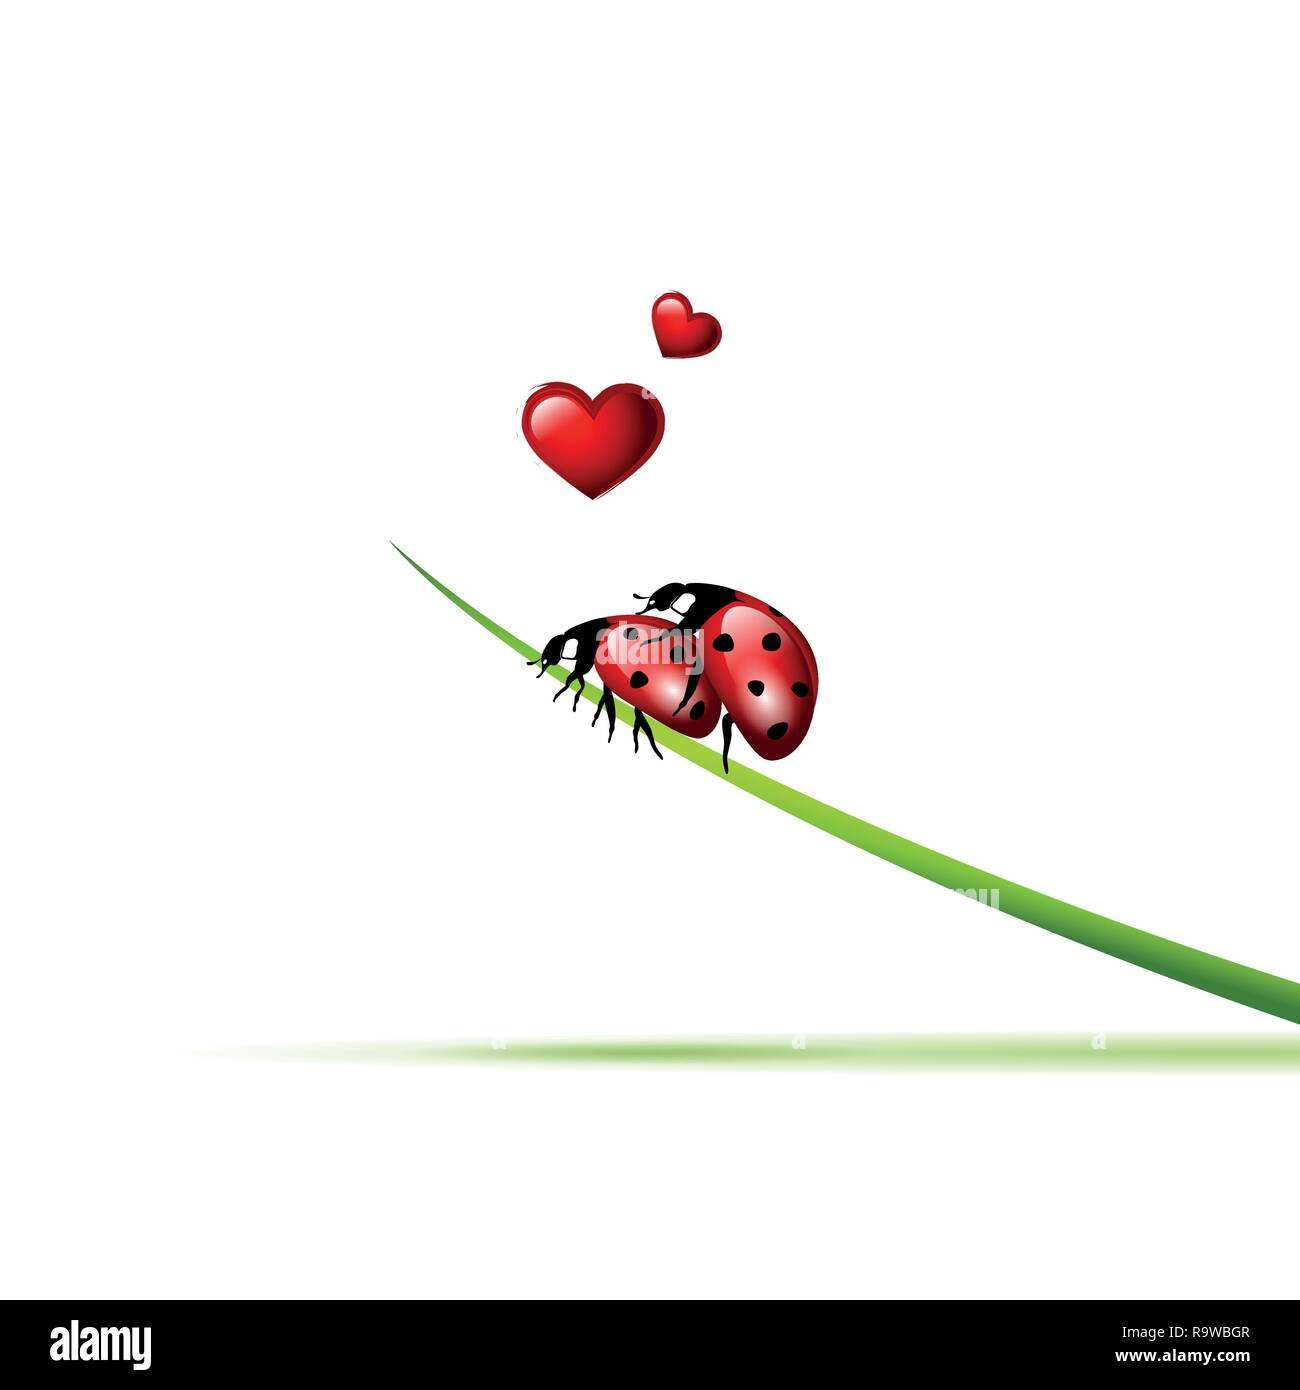 two ladybugs make love on a blade of grass vector illustration EPS10 - Stock Vector